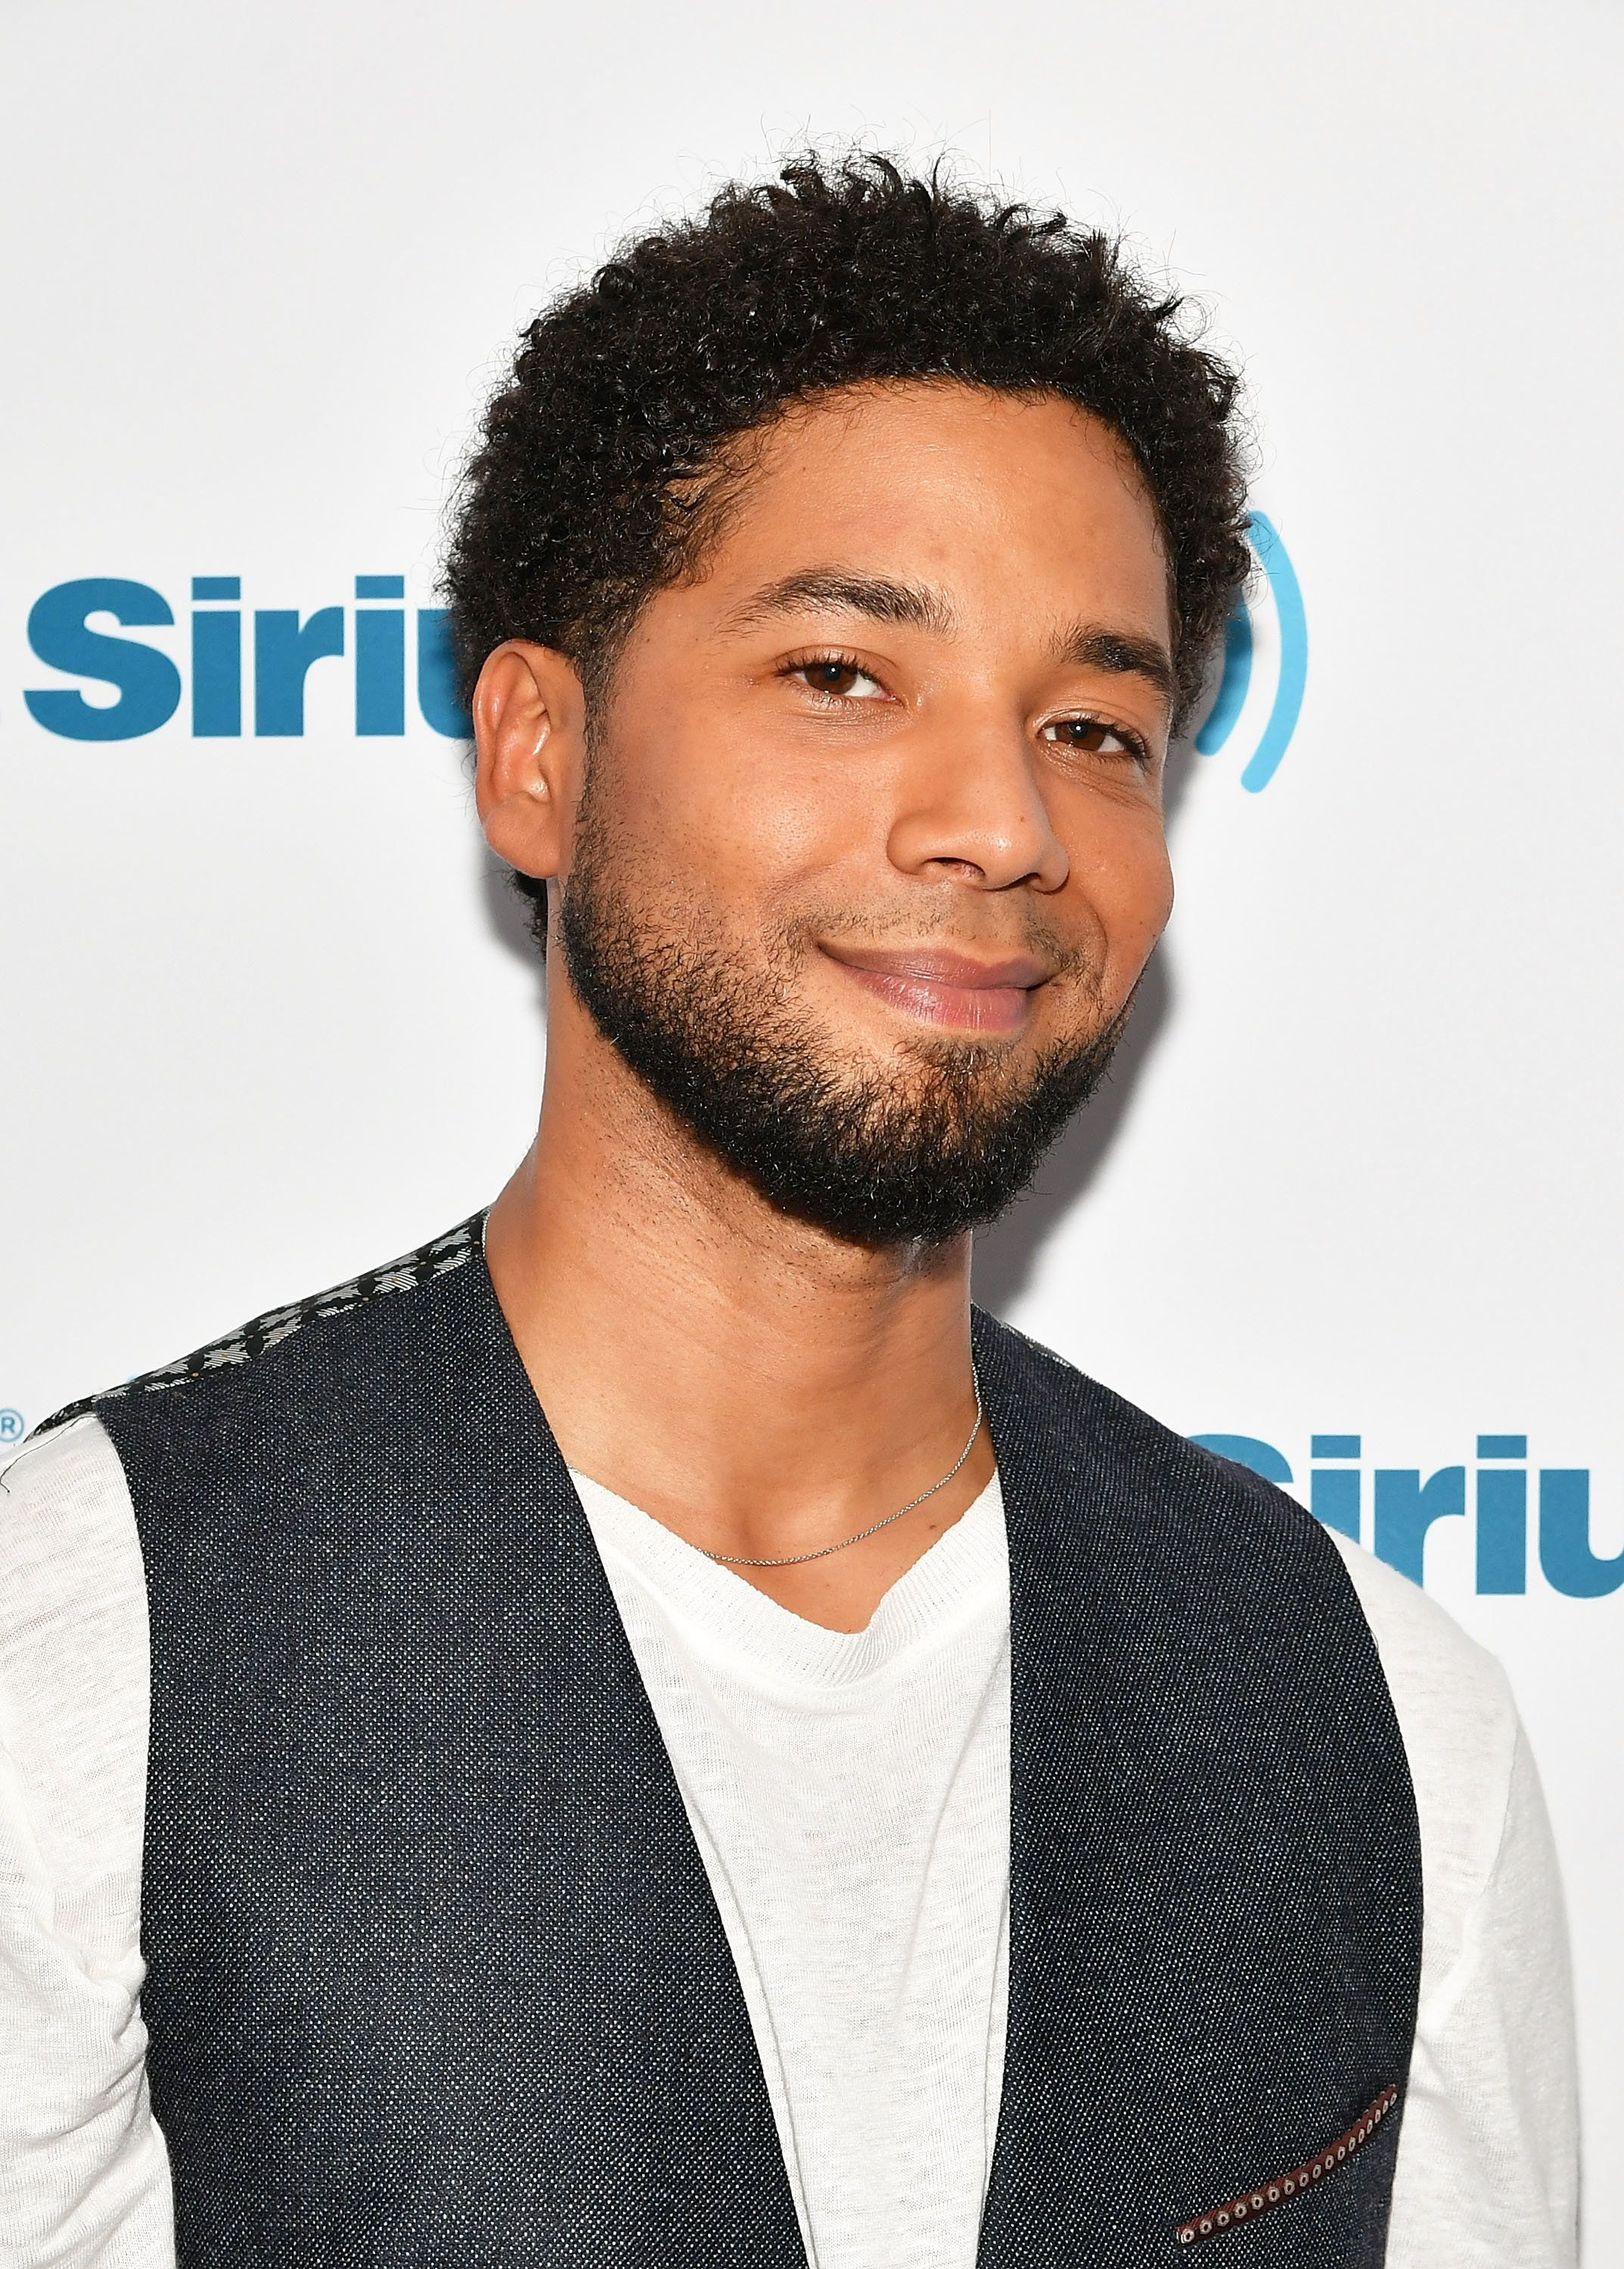 NEW YORK, NY - SEPTEMBER 25:  Actor Jussie Smollett visits SiriusXM Studios on September 25, 2017 in New York City.  (Photo by Slaven Vlasic/Getty Images)